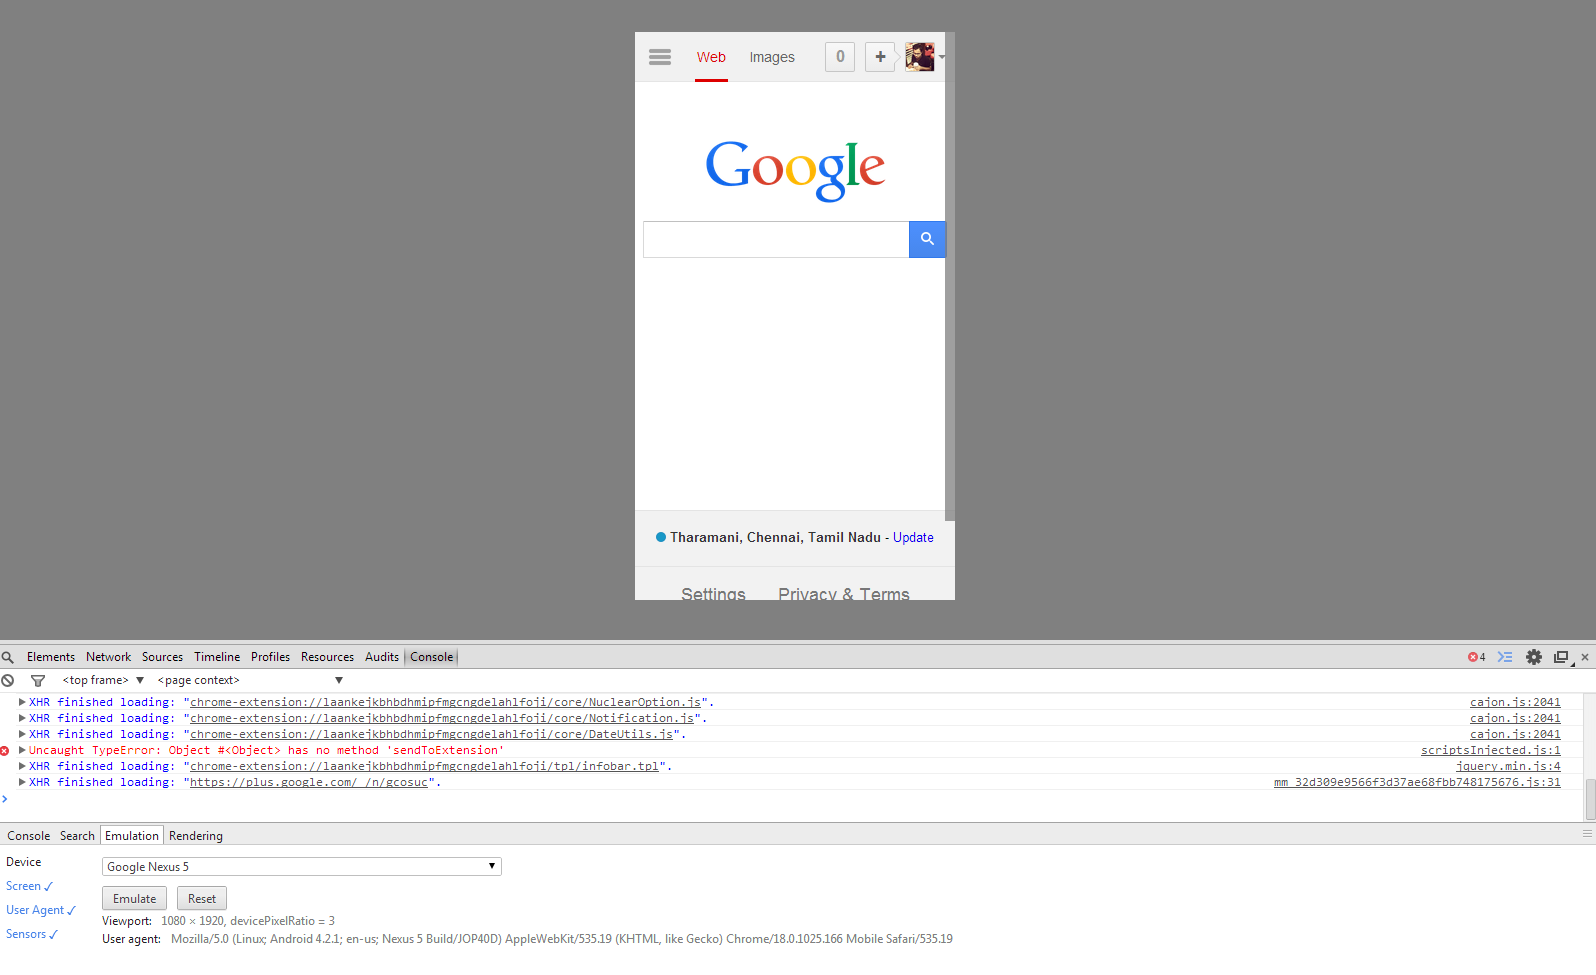 Emulating mobiles and tablets from Google Chrome (Viewing mobile